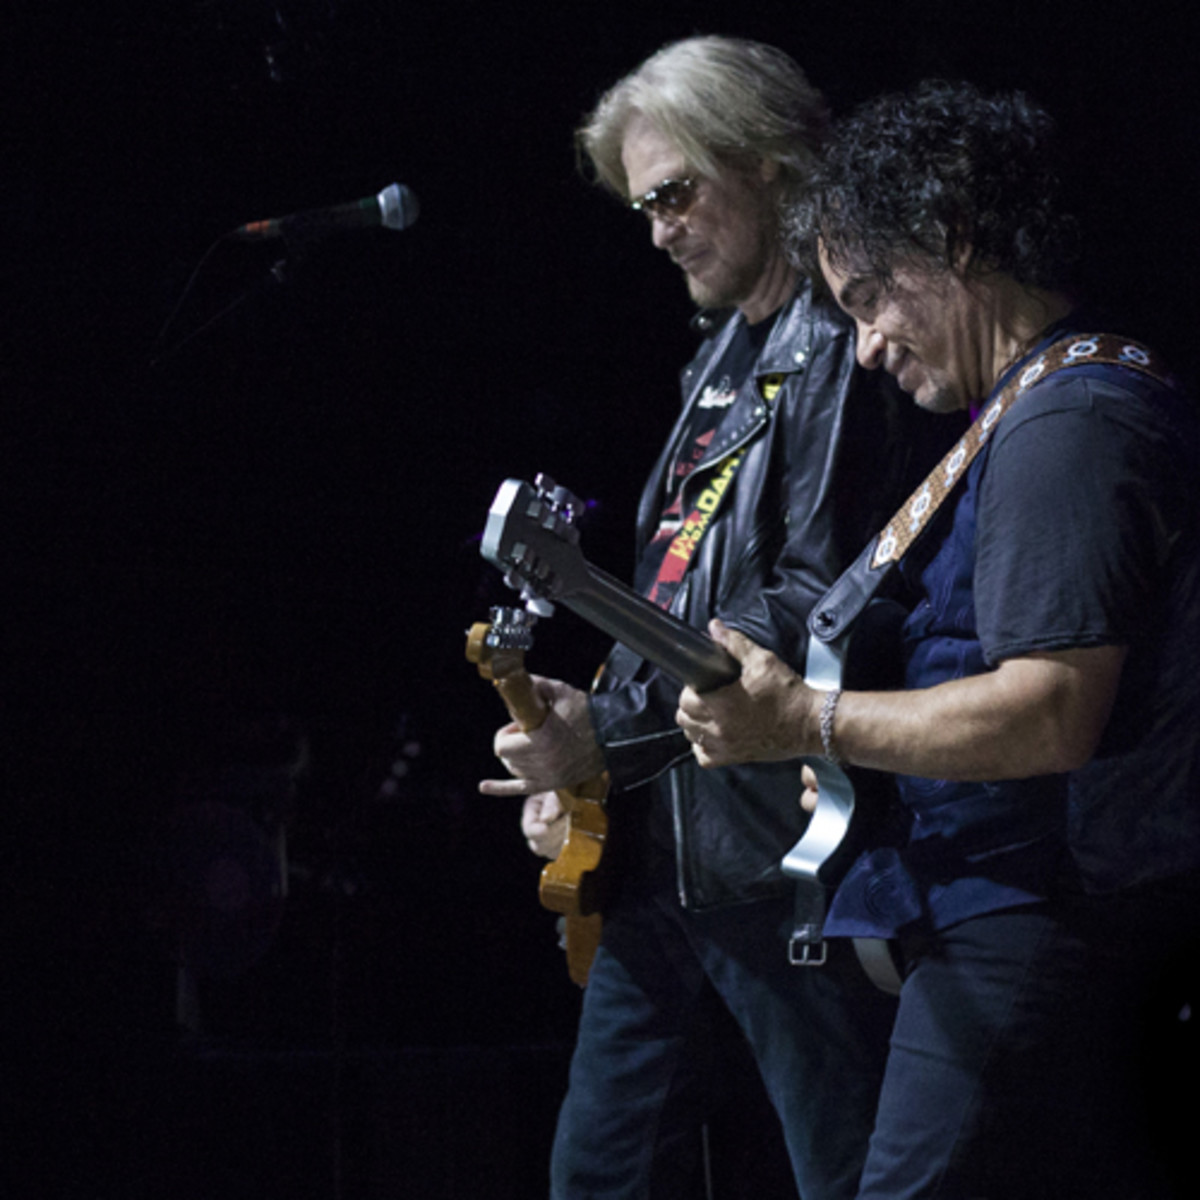 Daryl Hall & John Oates playing their sold out show at the Olympia Theatre on Tuesday, 15 July 2014.